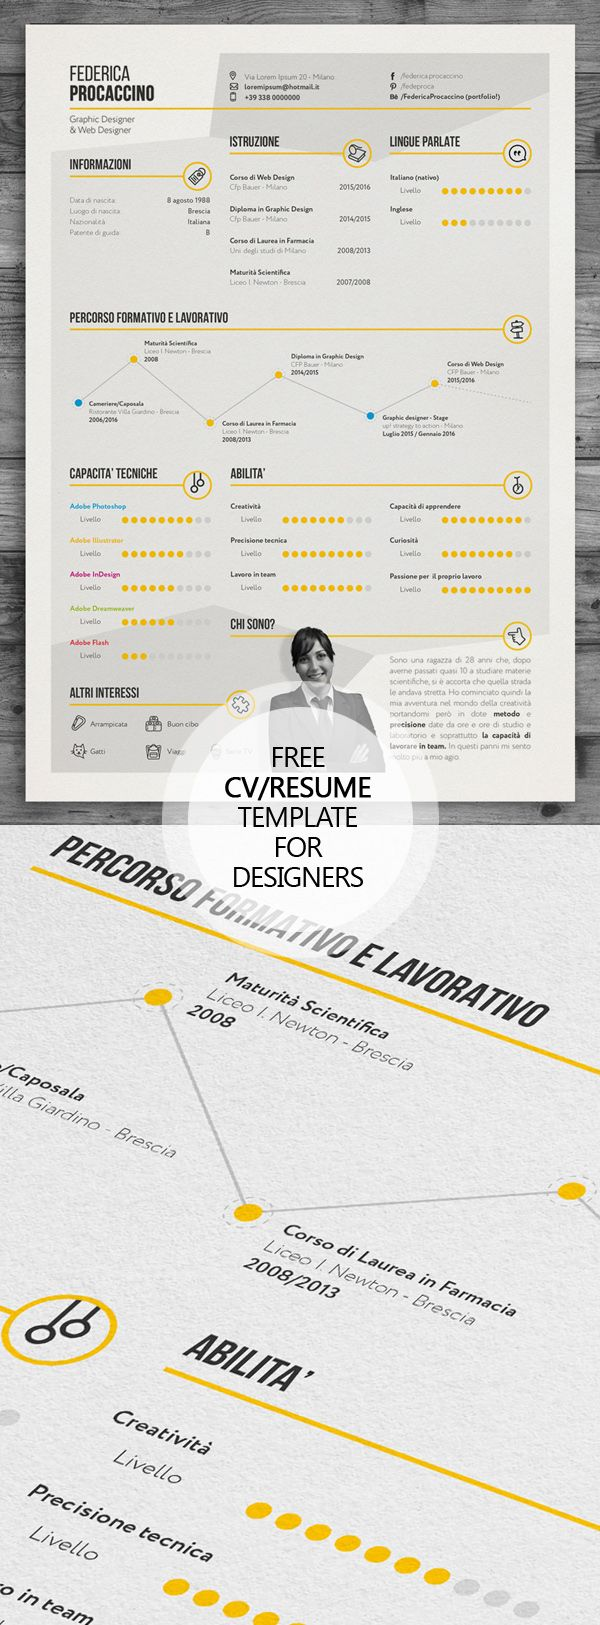 best ideas about creative resume templates 15 psd cv resume and cover letter templates